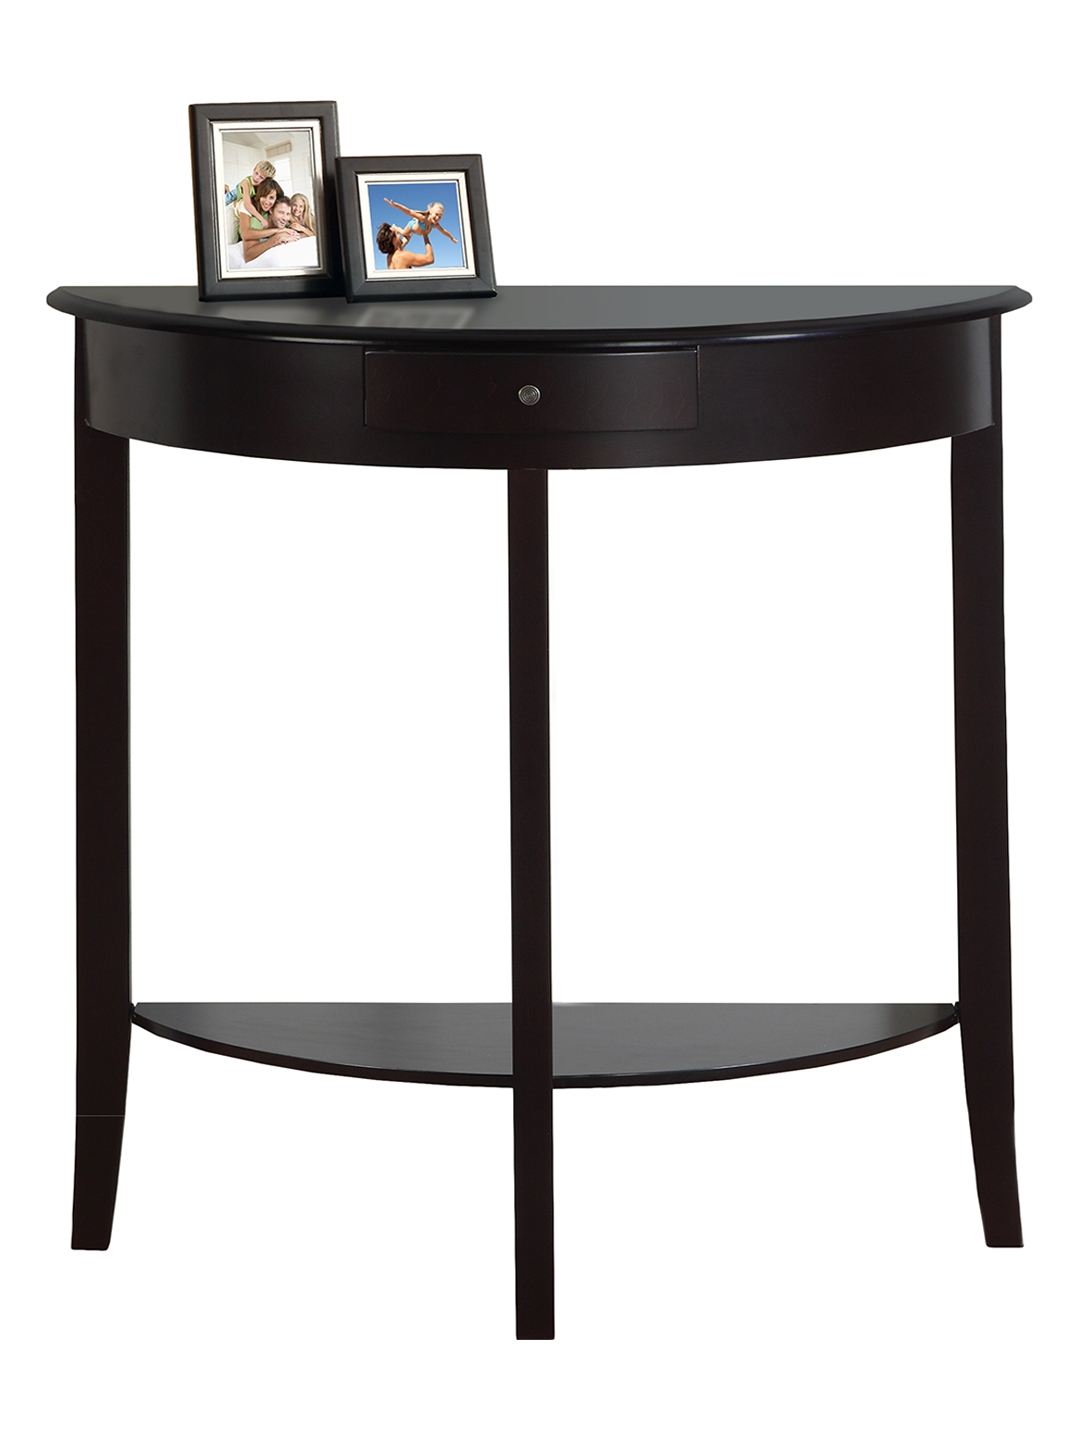 monarch specialties hall console accent table trend tiny tall slim tables pebble side stands office storage cabinets oval linens modern hallway cherry wood dinner dale tiffany